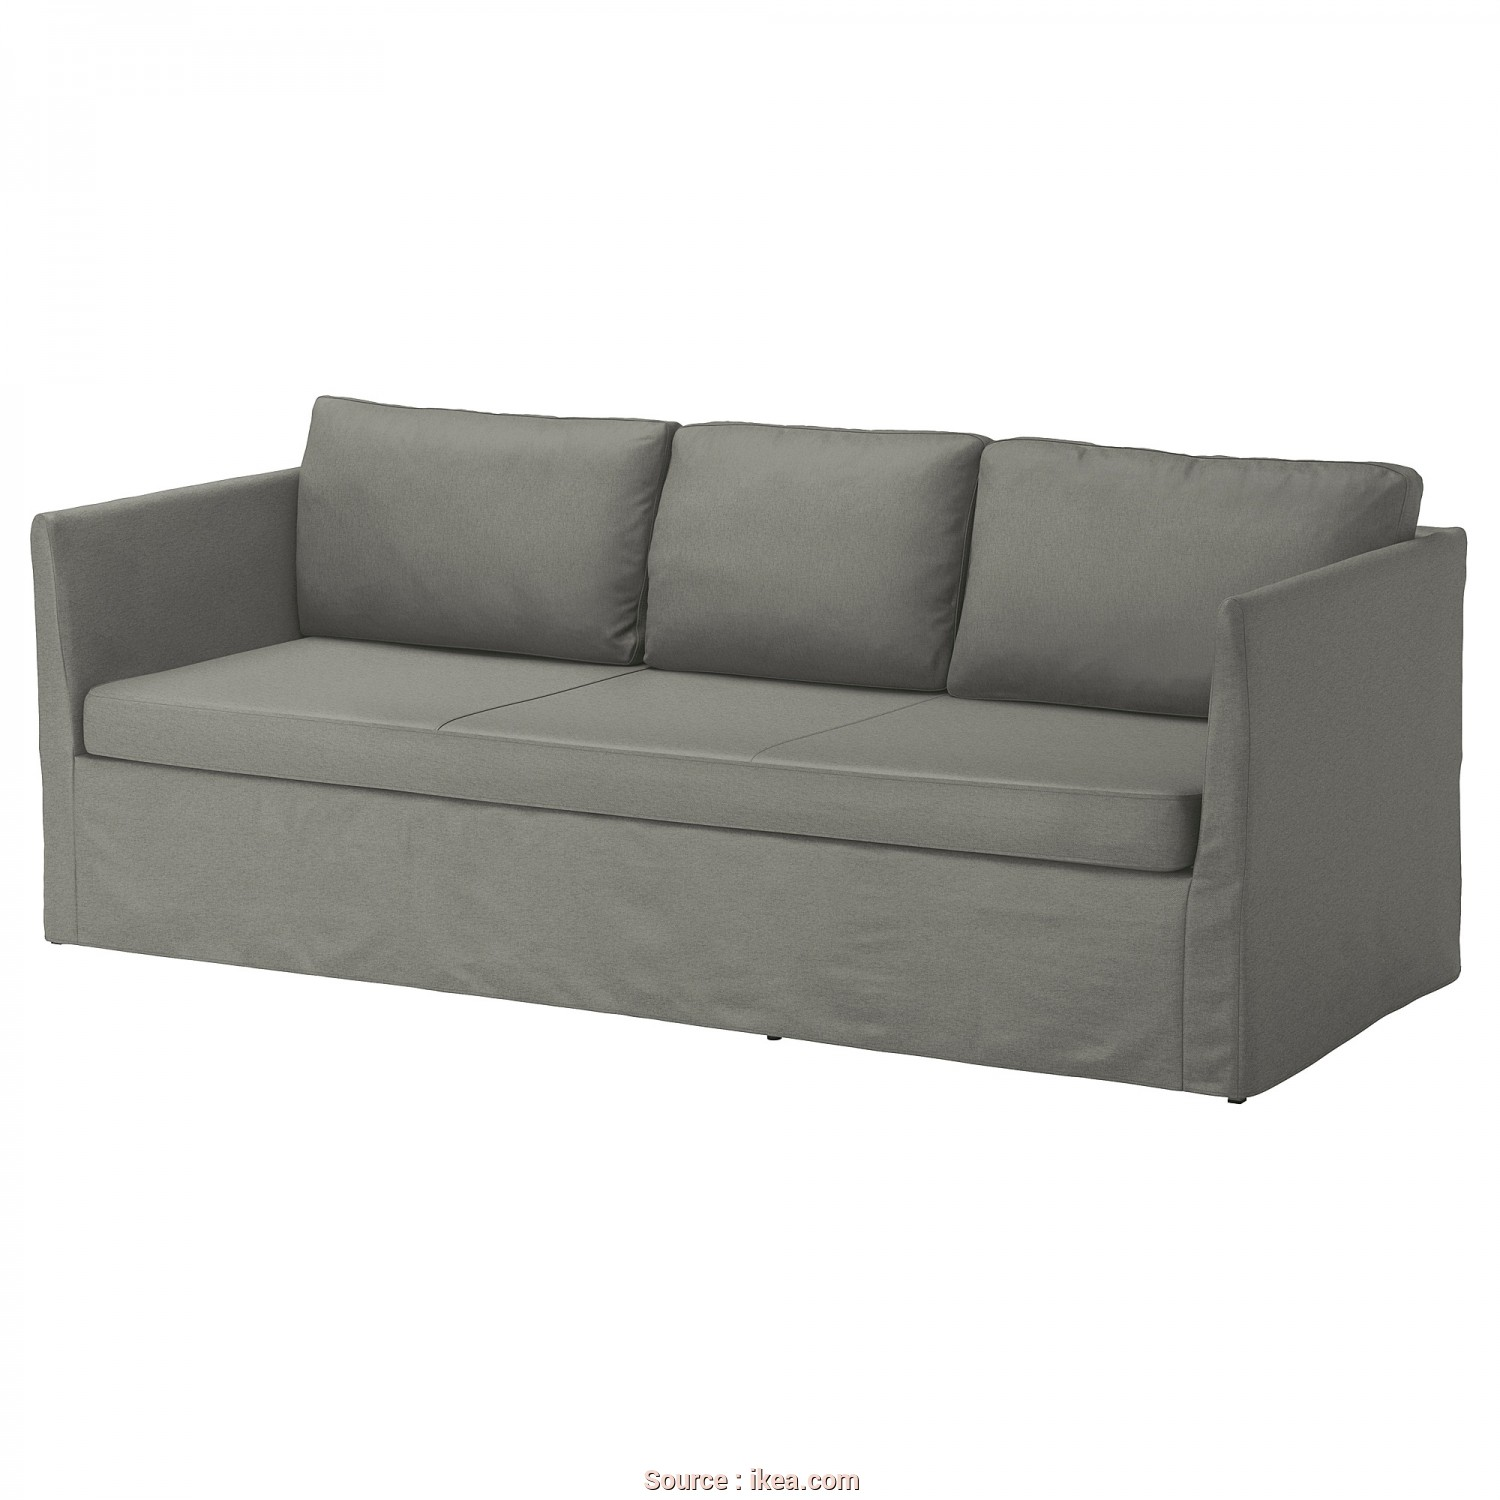 Ikea Klippan 3 Seater Sofa Covers, Costoso IKEA BRÅTHULT 3-Seat Sofa, Sit Comfortably Thanks To, Resilient Foam, Springy